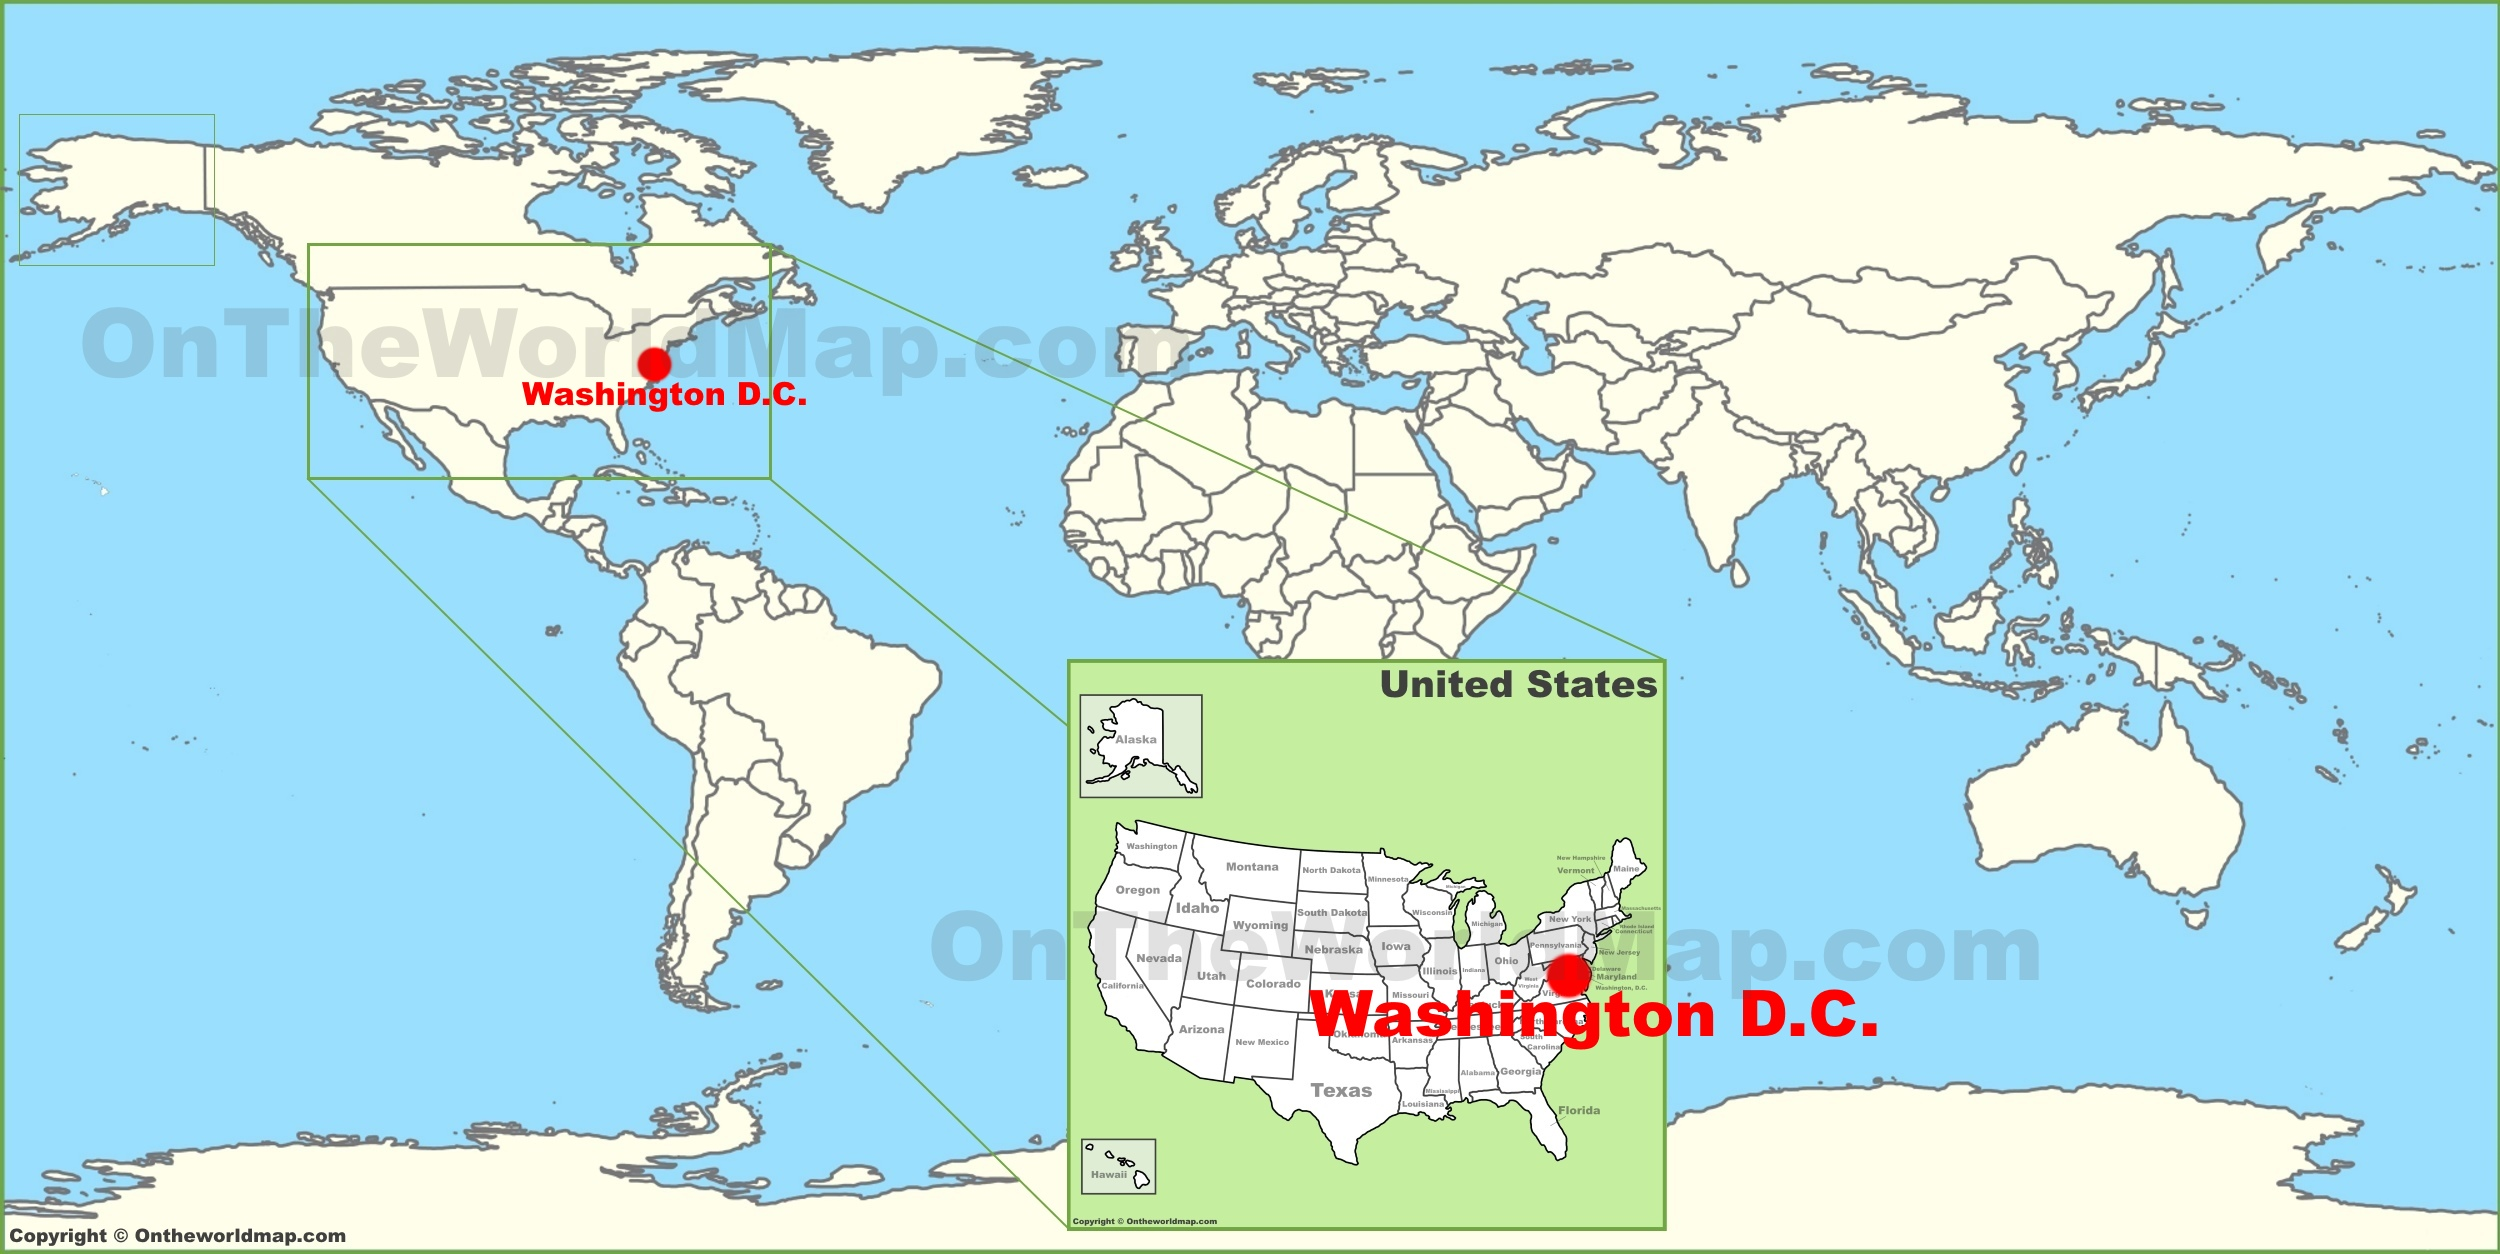 Political Map Of United States With The Several States Where - Washington on the us map